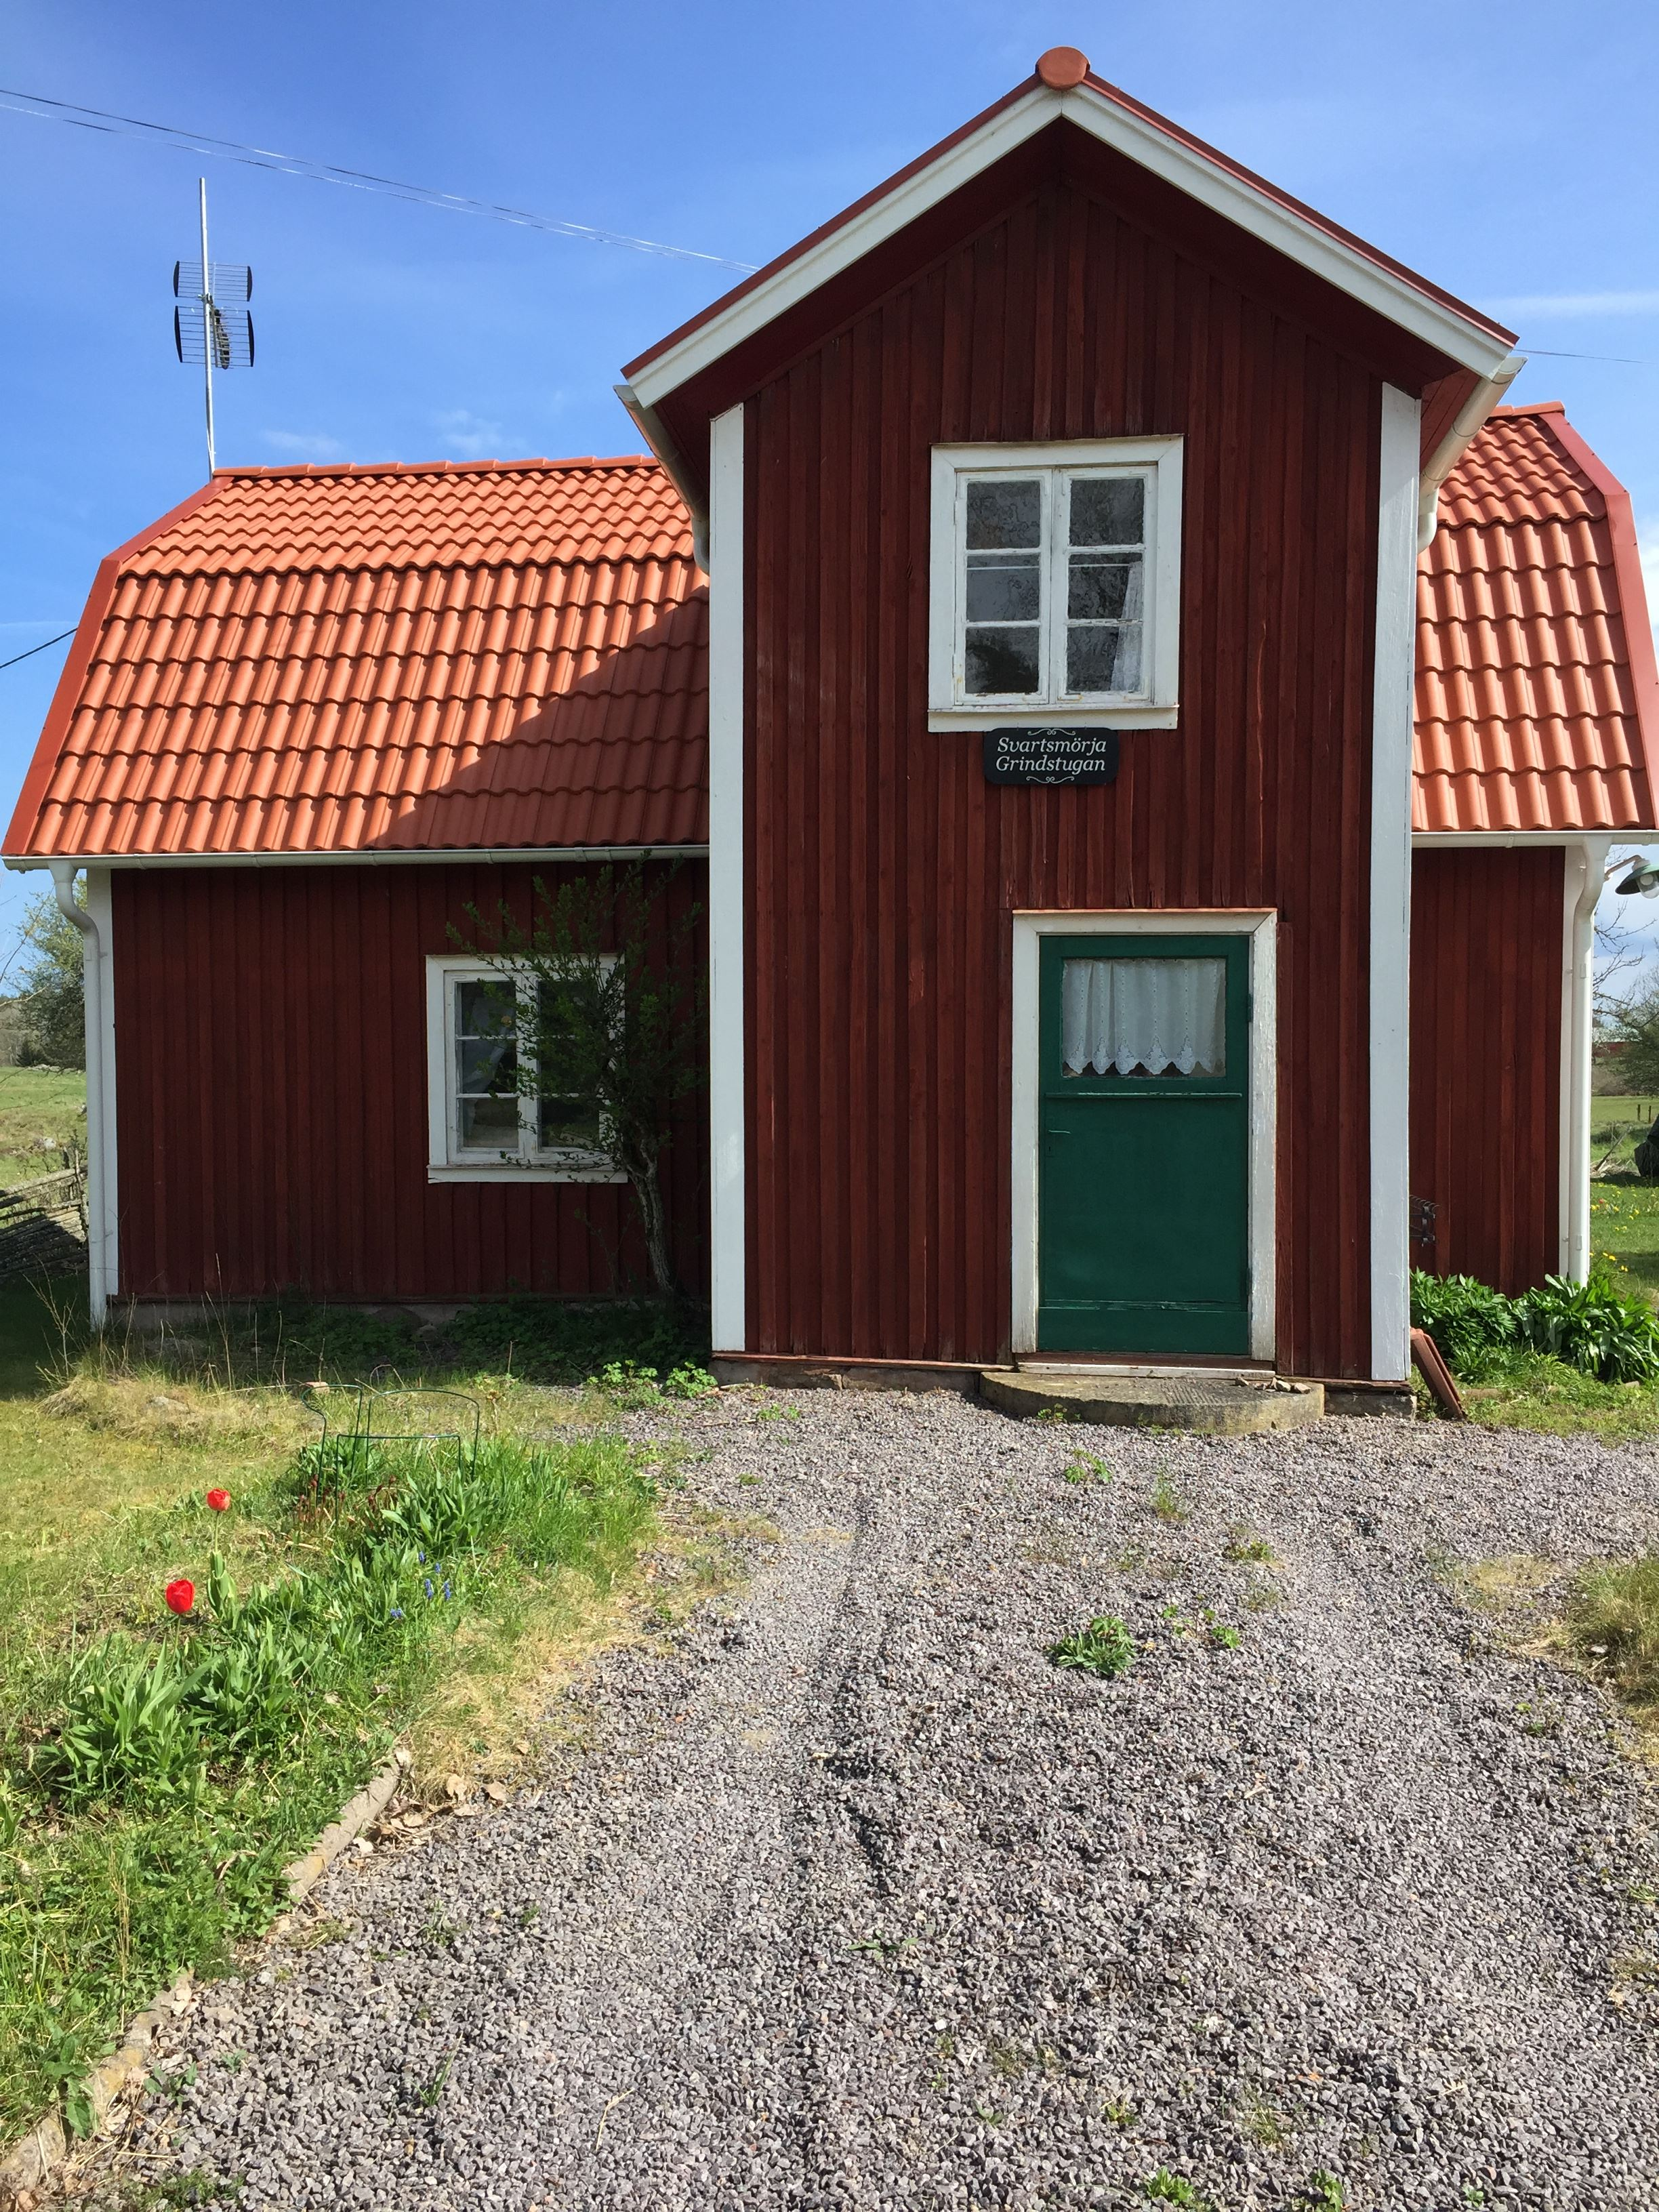 Private rental Västervik, Svartsmörja Grindstuga